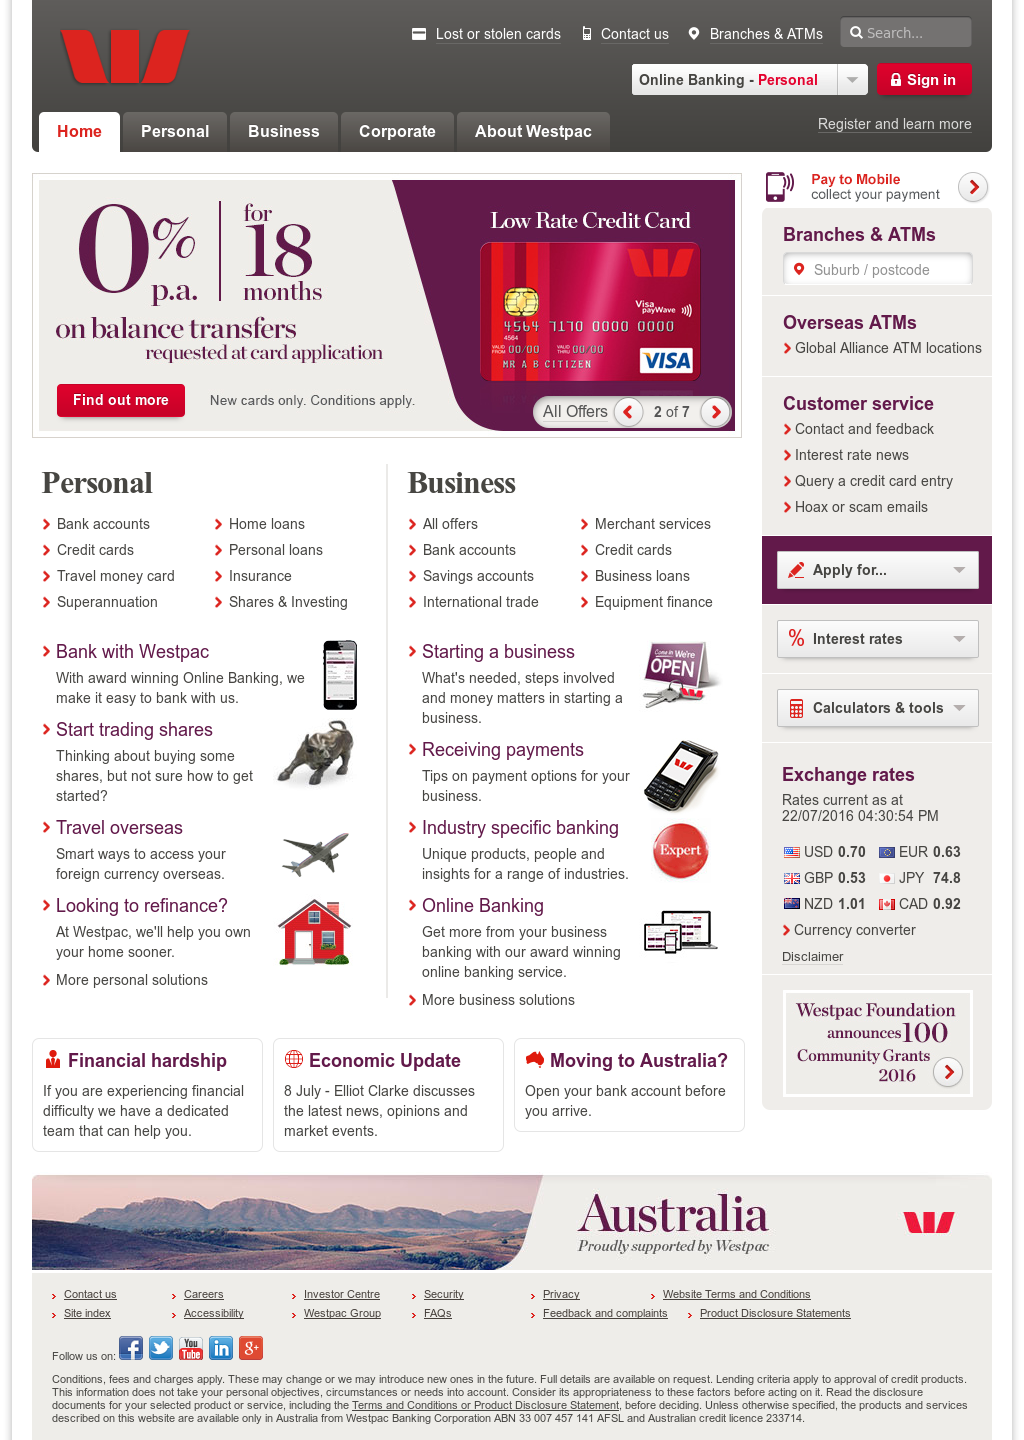 Westpac Competitors, Revenue and Employees - Owler Company